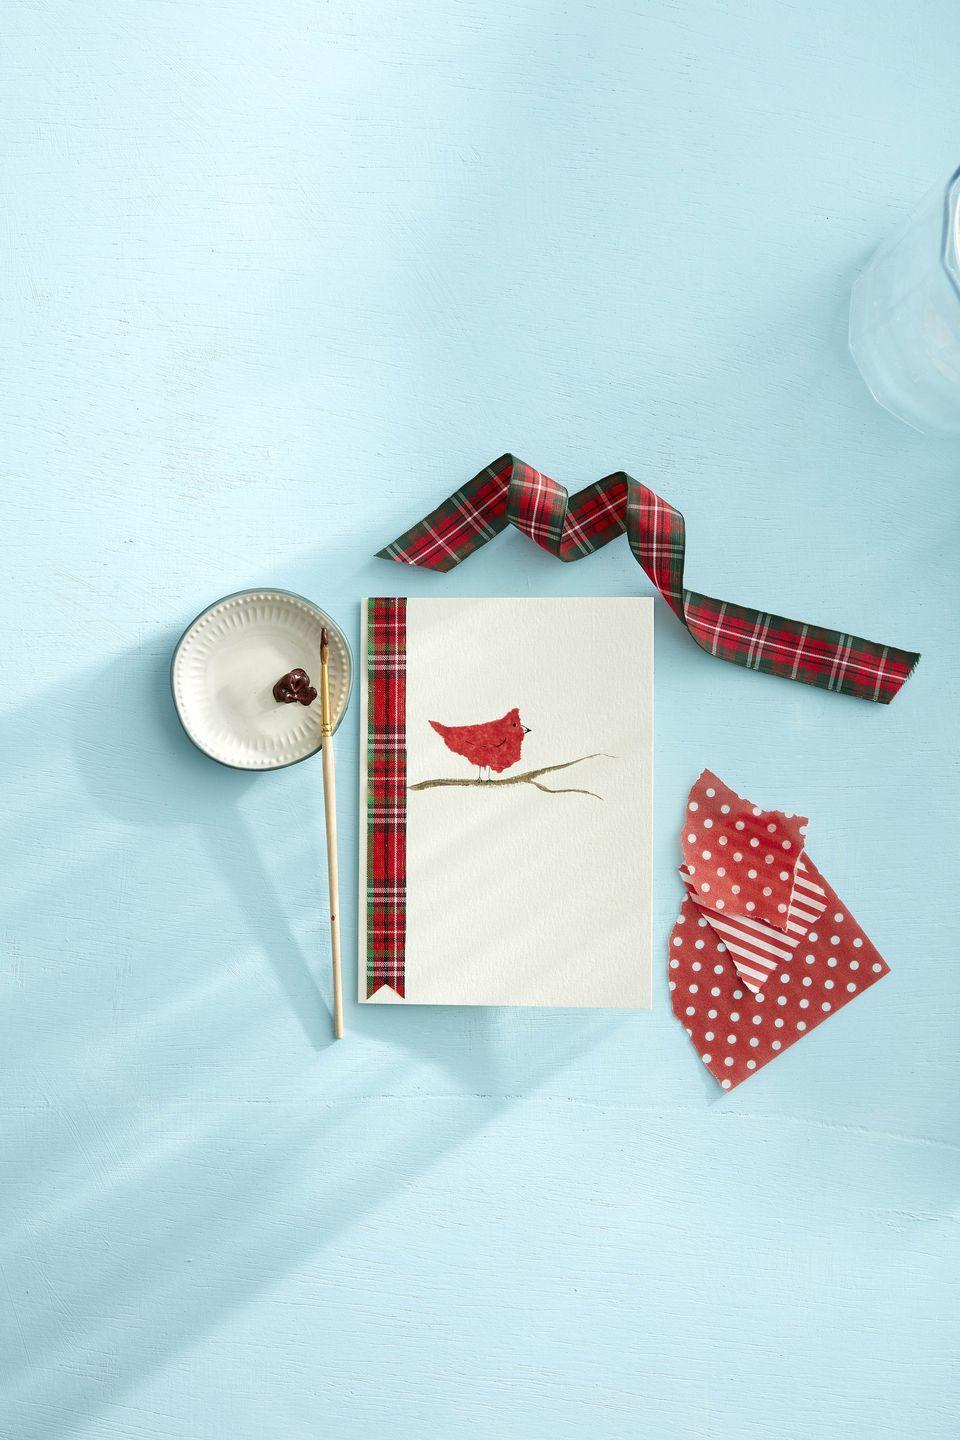 """<p>This sweet fella will chirp out a holiday greeting to all of your loved ones this season. </p><p><strong>To make:</strong> Paint a branch on a plain card with brown craft paint. Tear a bird shape from red tissue paper and glue to the card just above the branch, leaving enough room for legs. Once dry, use a fine point black marker to draw on legs, a wing, an eye, and a beak. Glue a piece of ribbon along the fold edge of the card for extra flair.</p><p><a class=""""link rapid-noclick-resp"""" href=""""https://www.amazon.com/Micro-Pen-Fineliner-Anti-Bleed-Waterproof-Calligraphy/dp/B0722Y98KS/ref=sr_1_3_sspa?tag=syn-yahoo-20&ascsubtag=%5Bartid%7C10050.g.3872%5Bsrc%7Cyahoo-us"""" rel=""""nofollow noopener"""" target=""""_blank"""" data-ylk=""""slk:SHOP BLACK MARKER"""">SHOP BLACK MARKER</a></p>"""